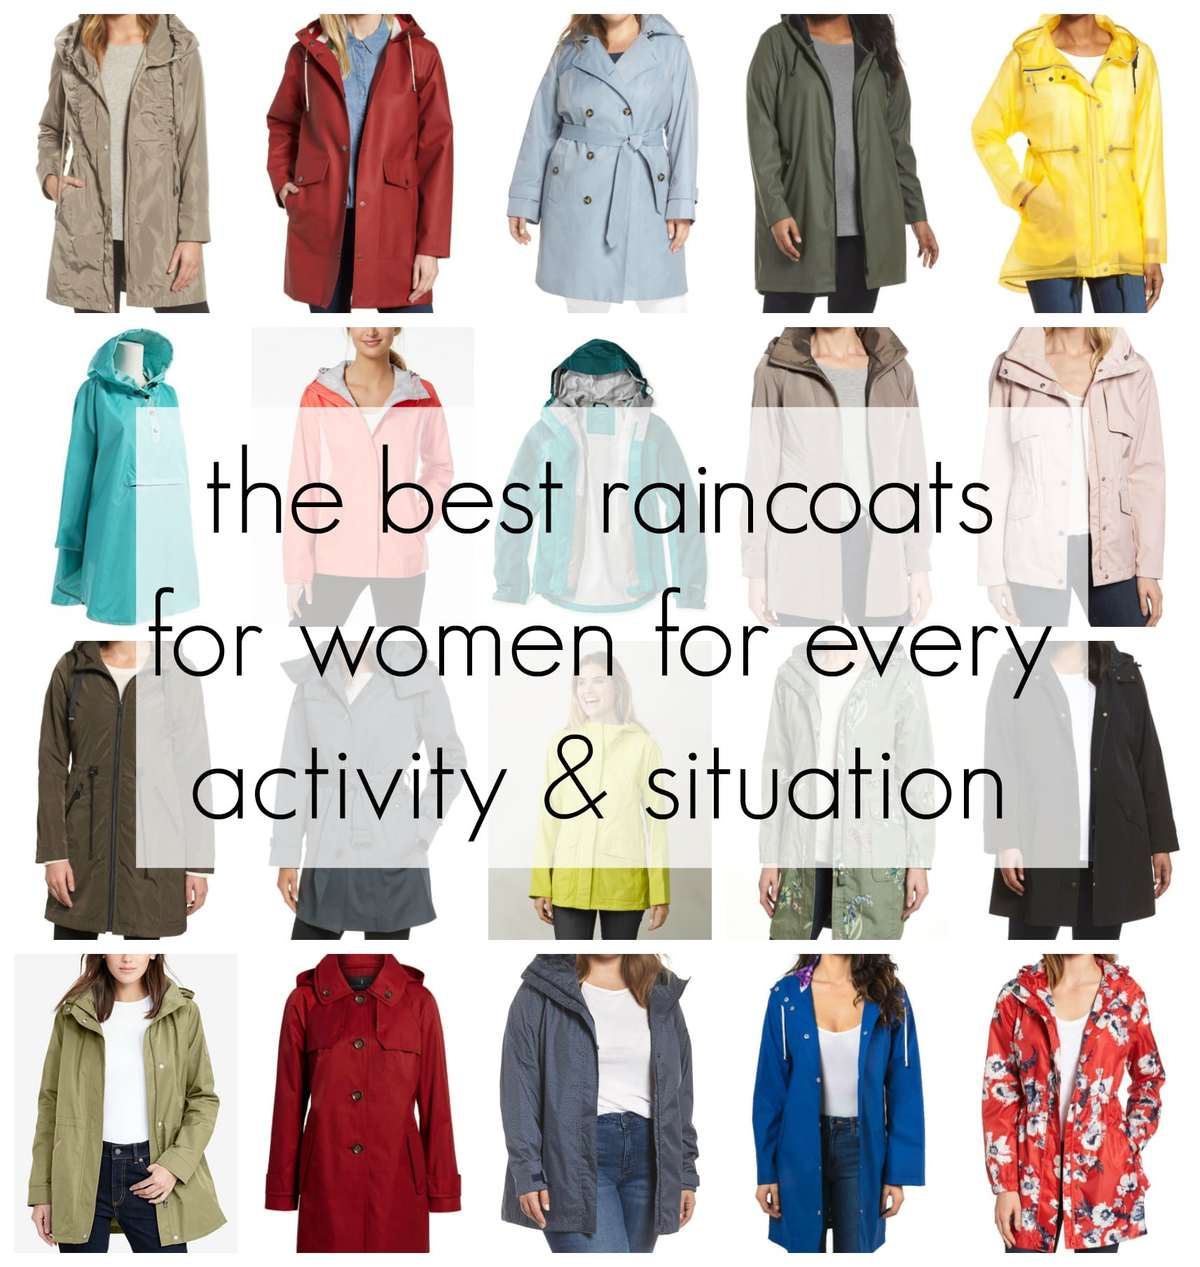 the best raincoats for women for every activity and situation picks by wardrobe oxygen